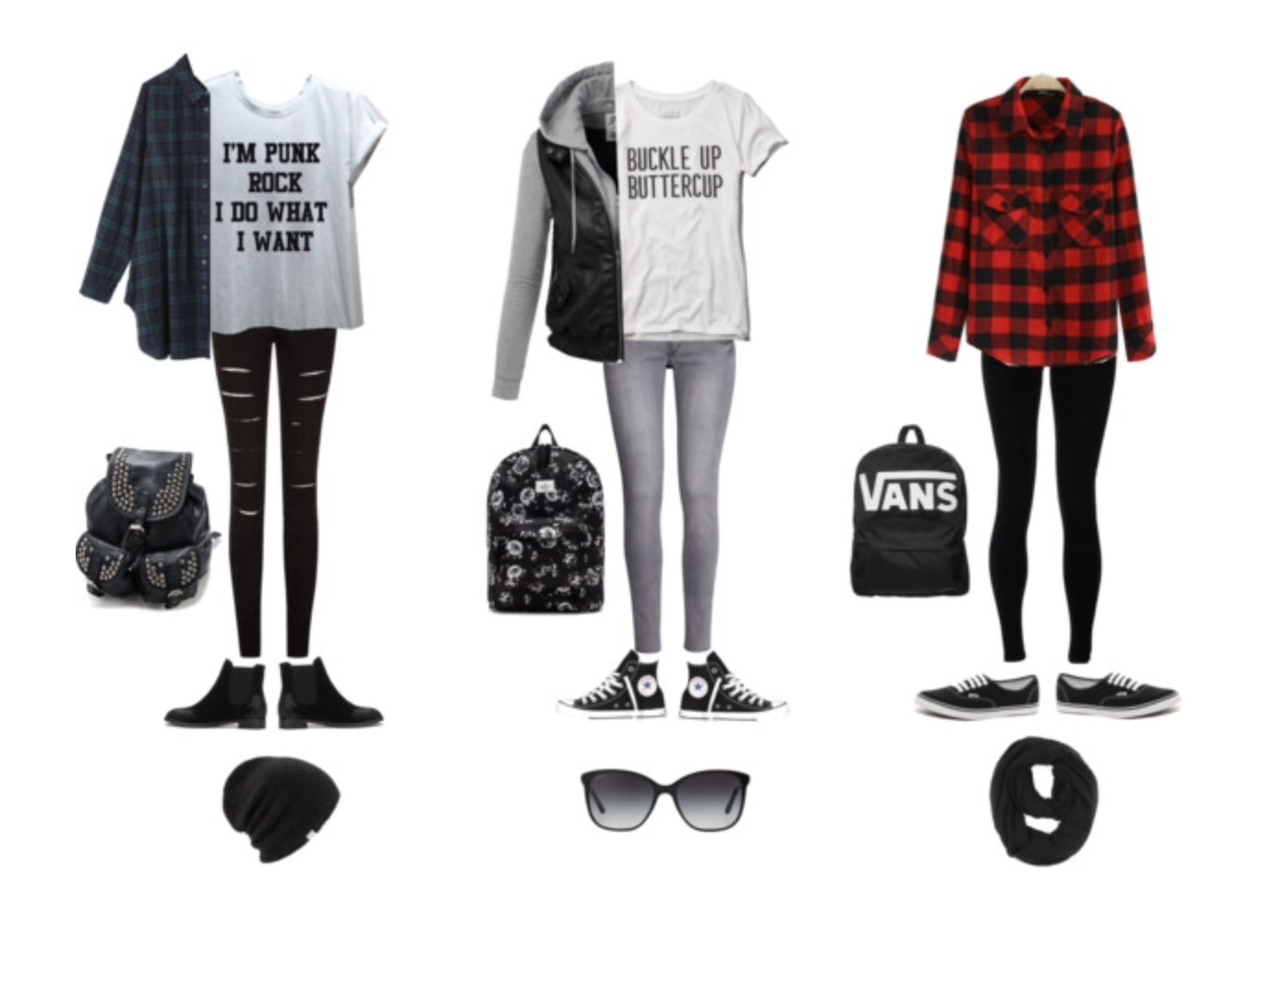 Rock punk outfits polyvore advise to wear in winter in 2019